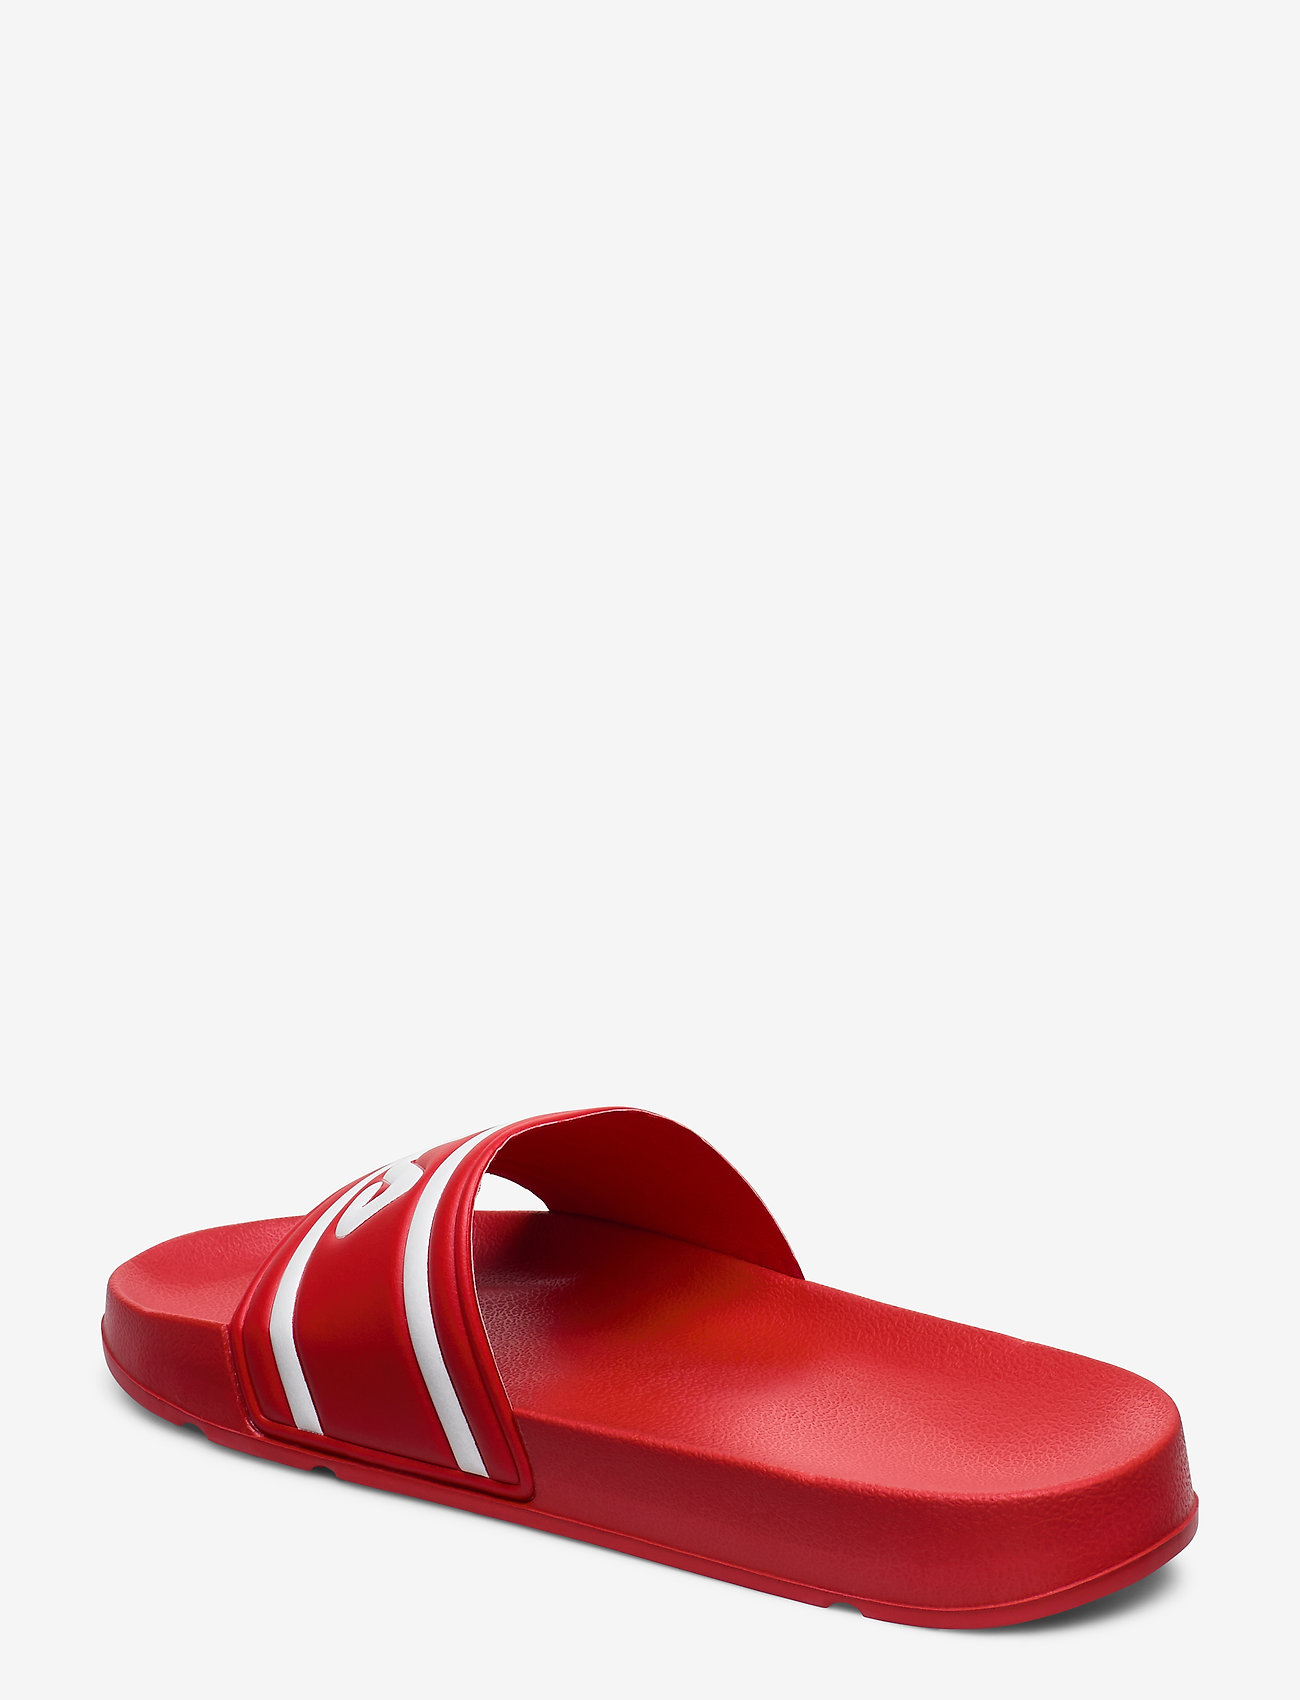 Morro Bay Slipper 2.0 (Fila Red) - FILA